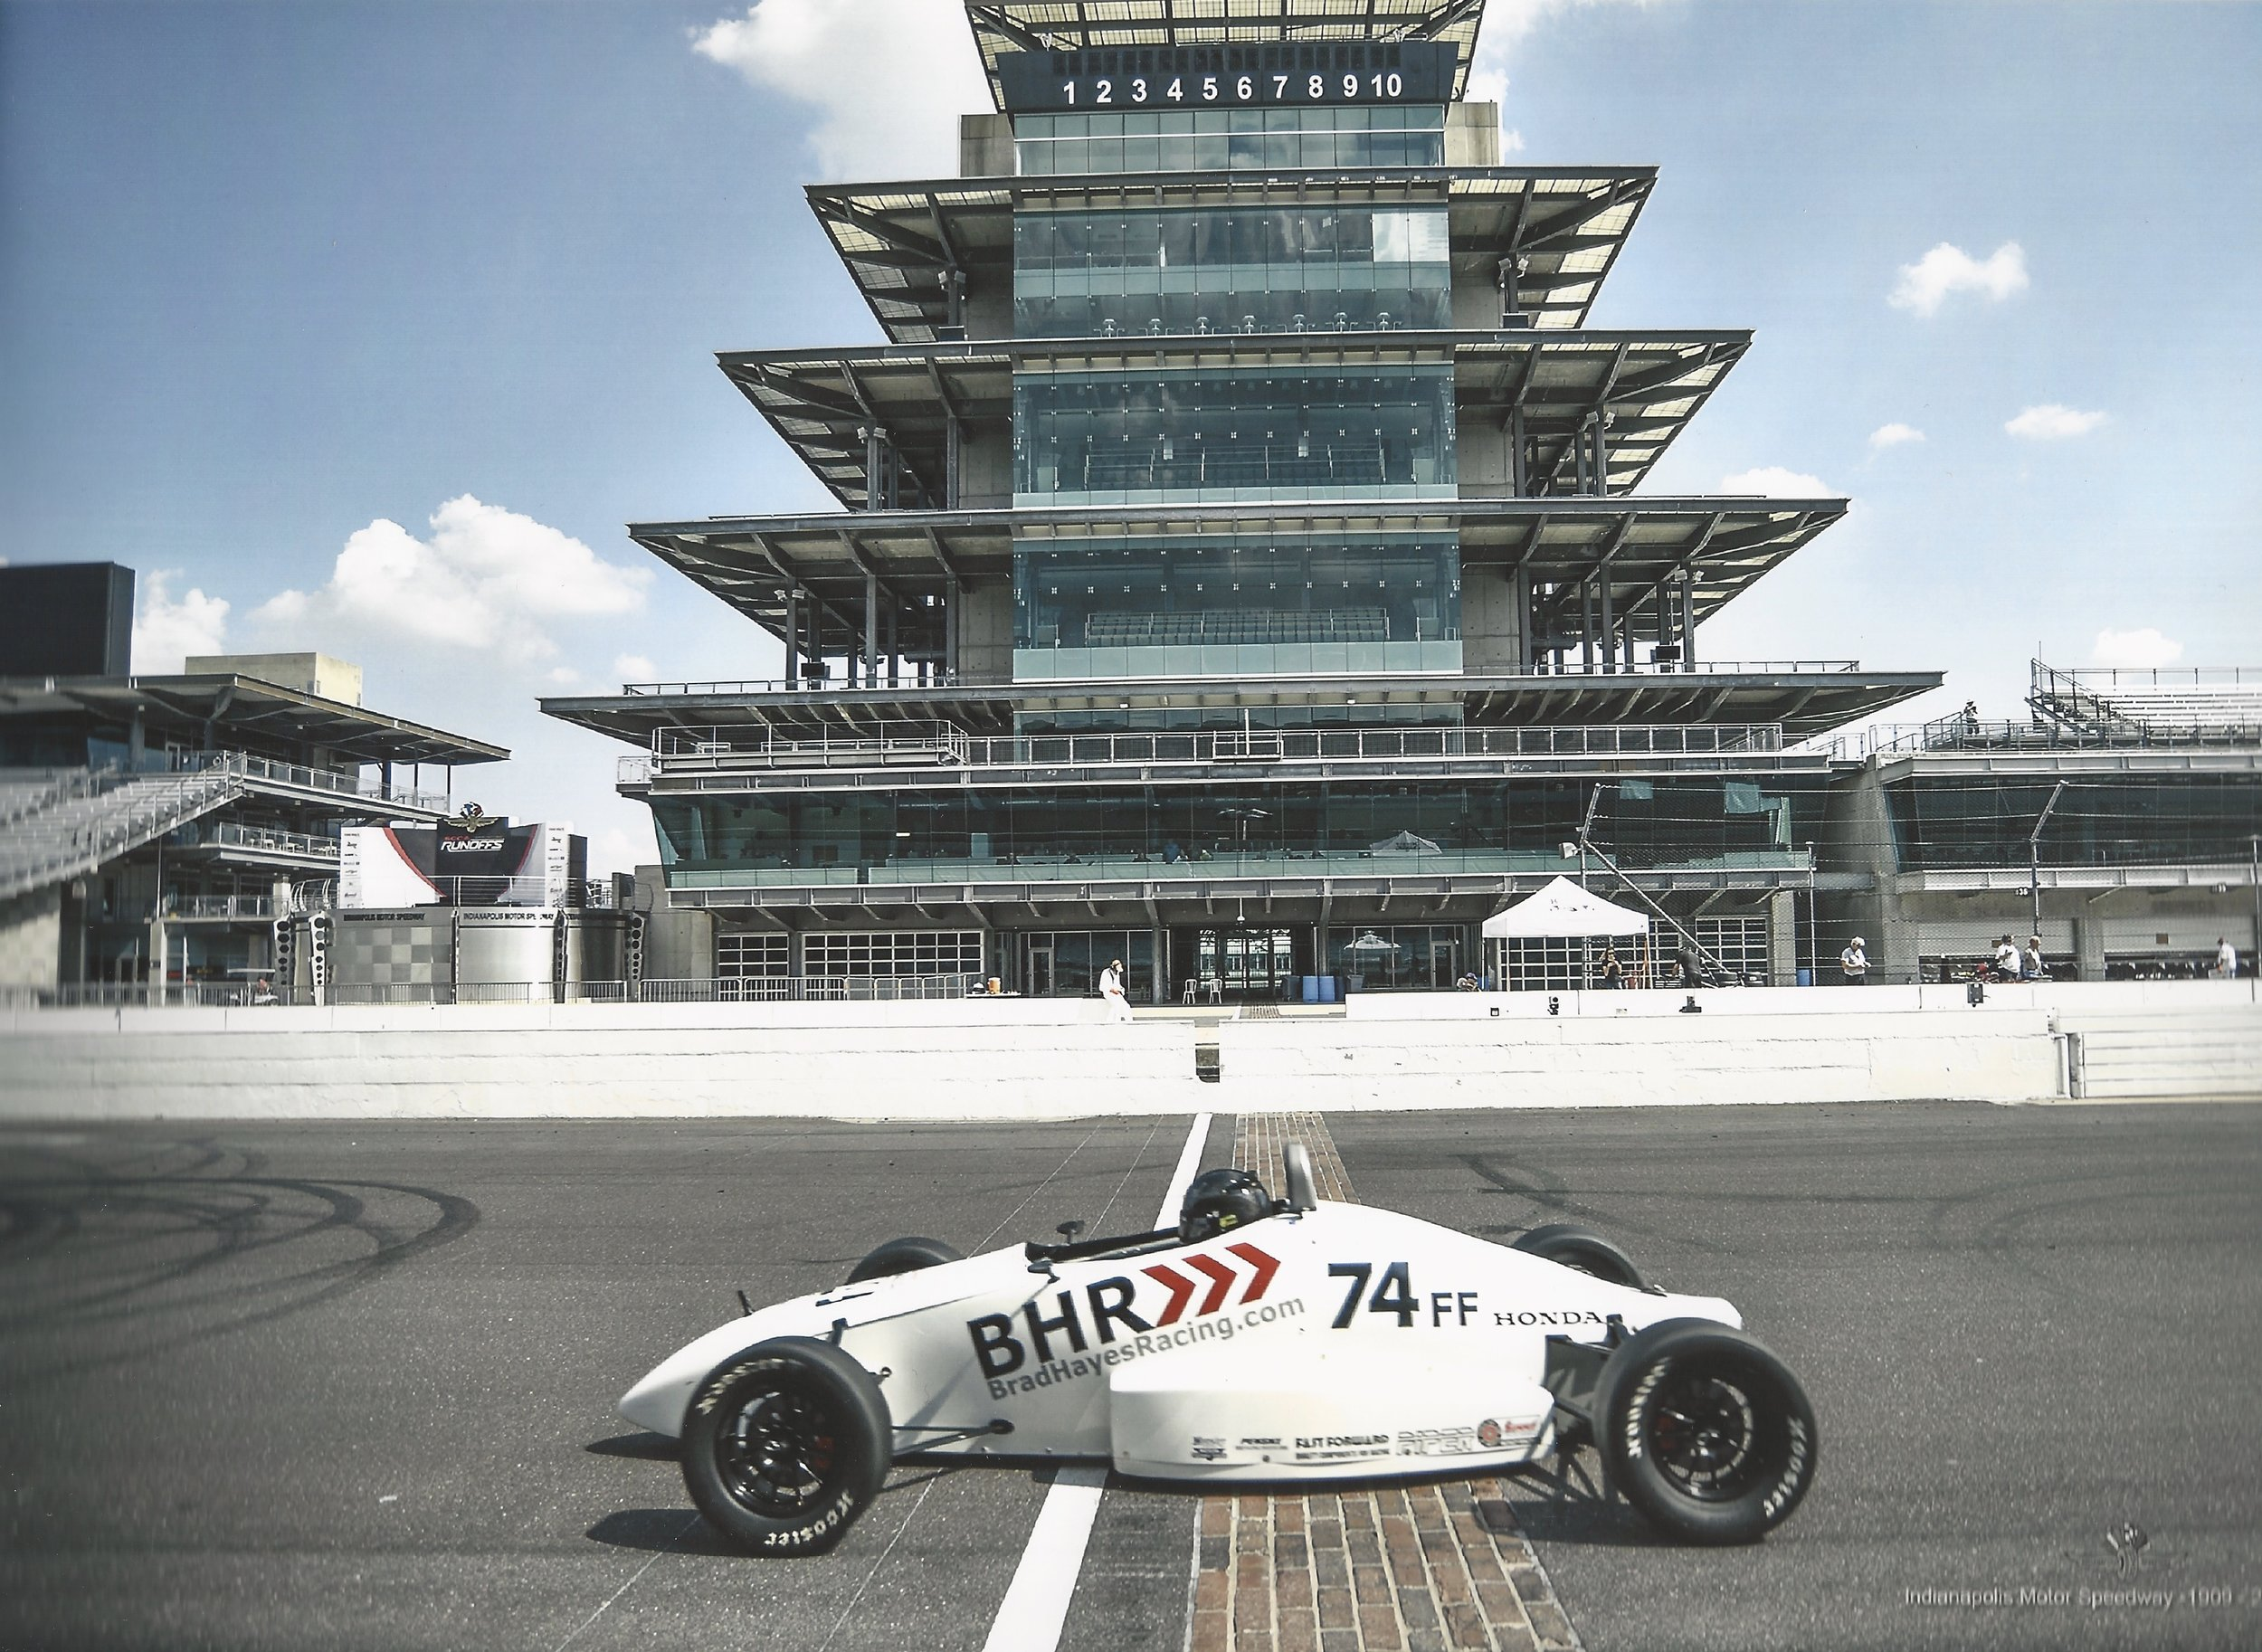 2017 Runoffs at the Indianapolis Motor Speedway